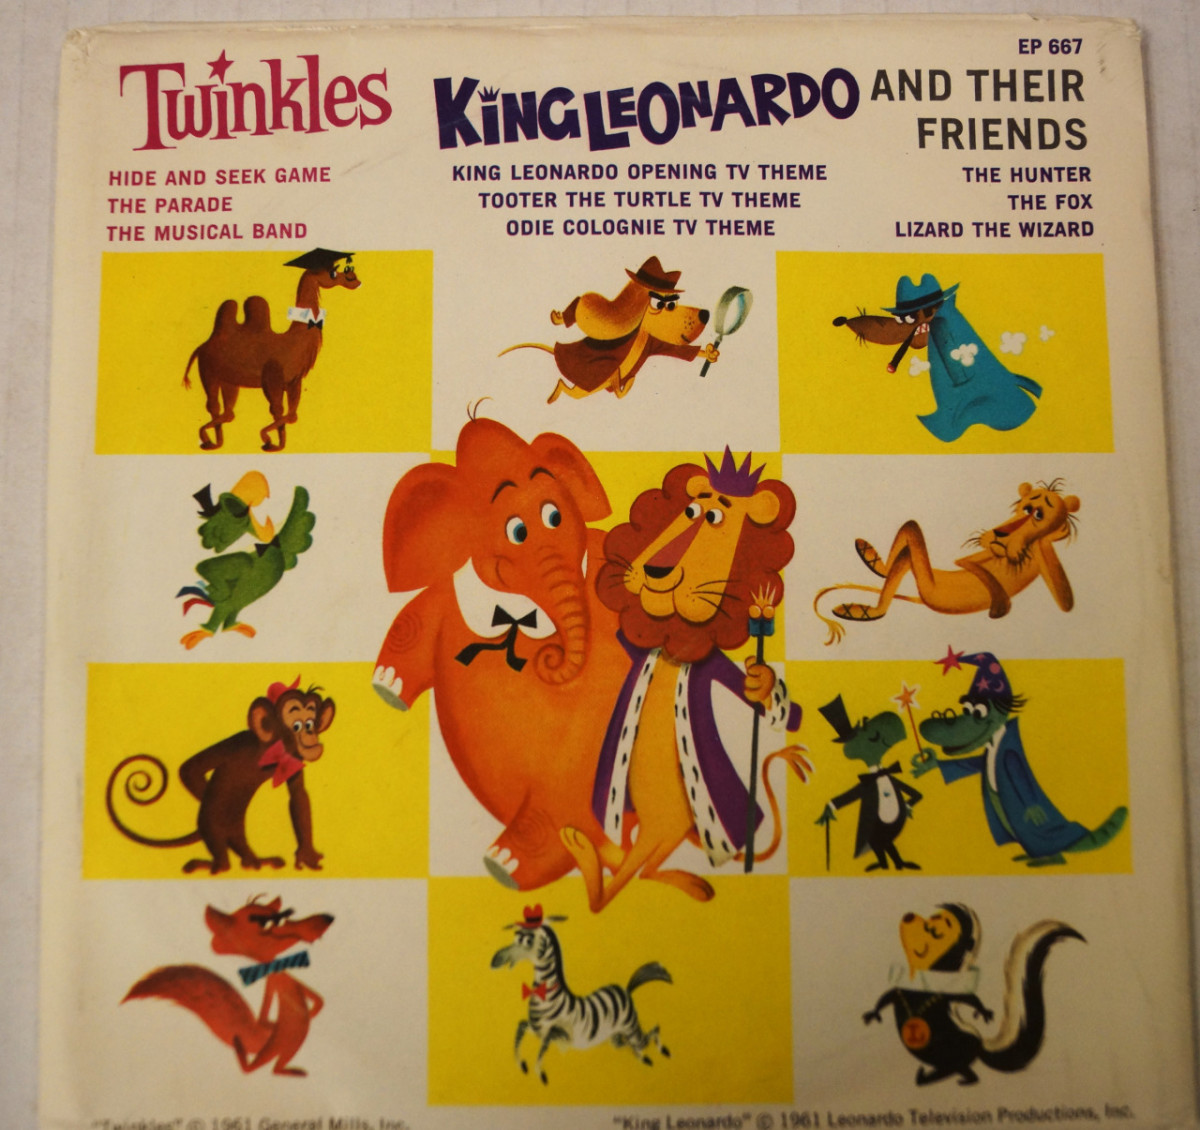 Record featuring cereal mascot Twinkles the Elephant alongside King Leonardo